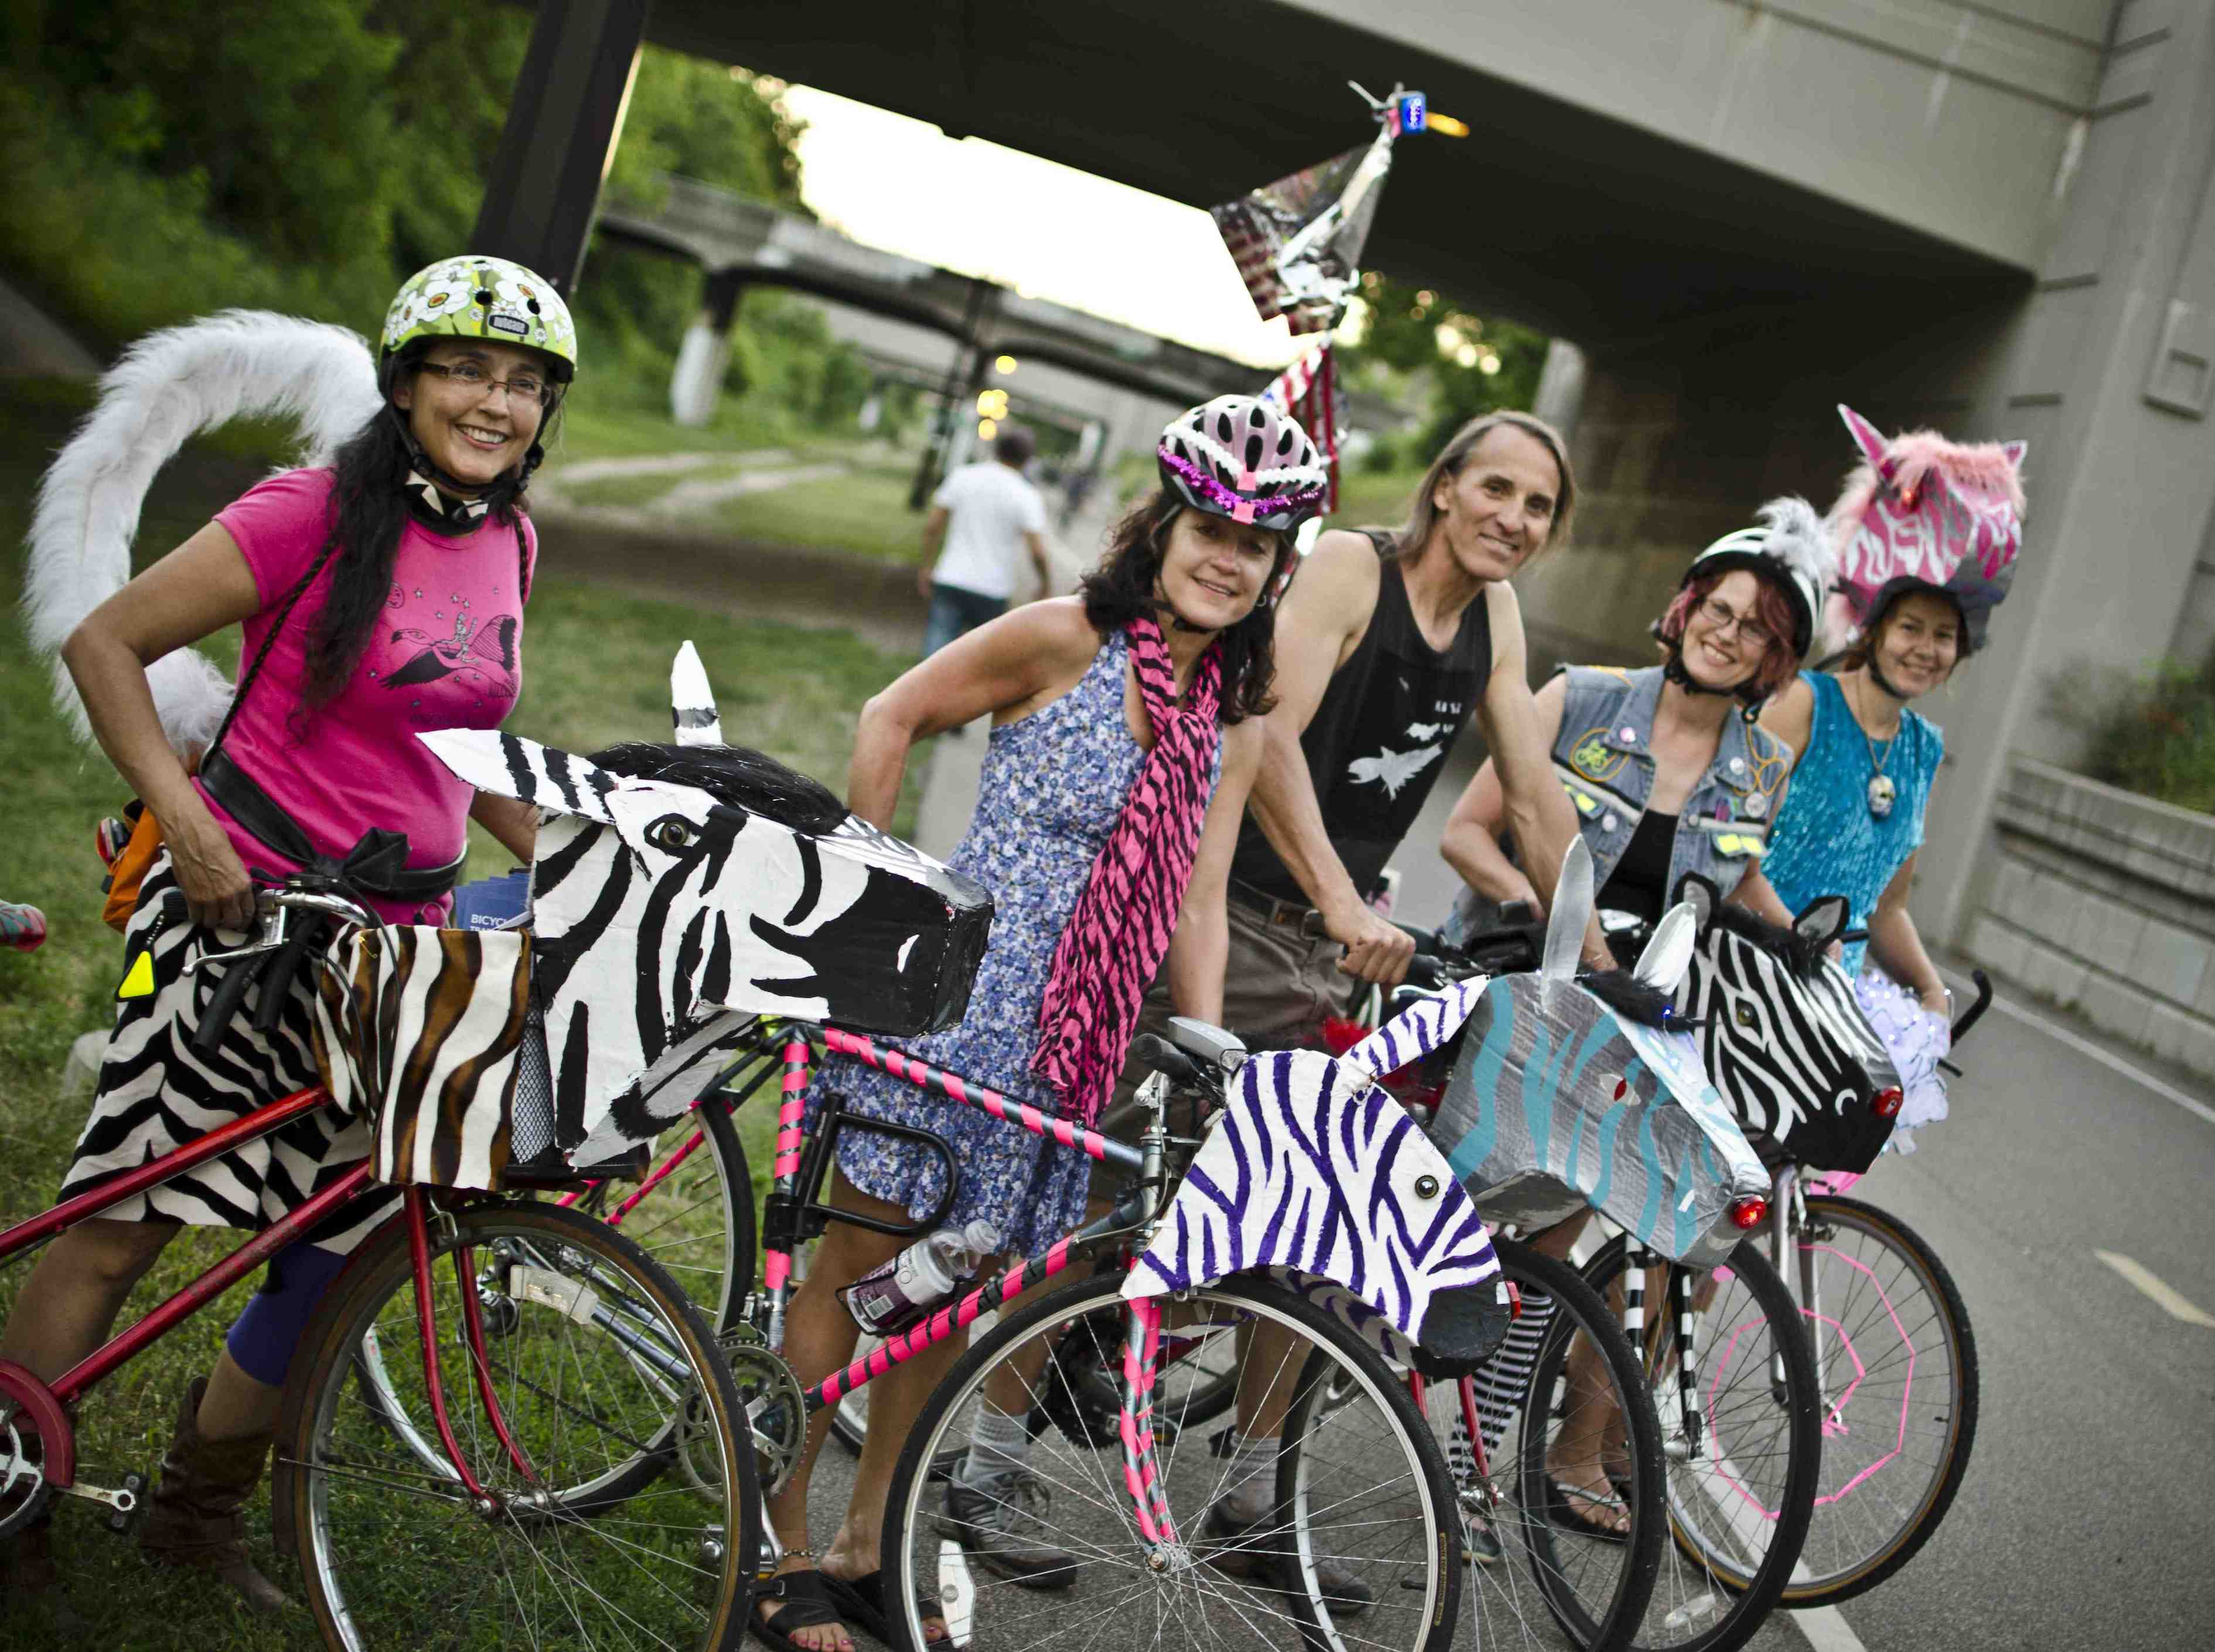 The sixth-annual Greenway Glow is set for July 29. Photo by Erik Blume